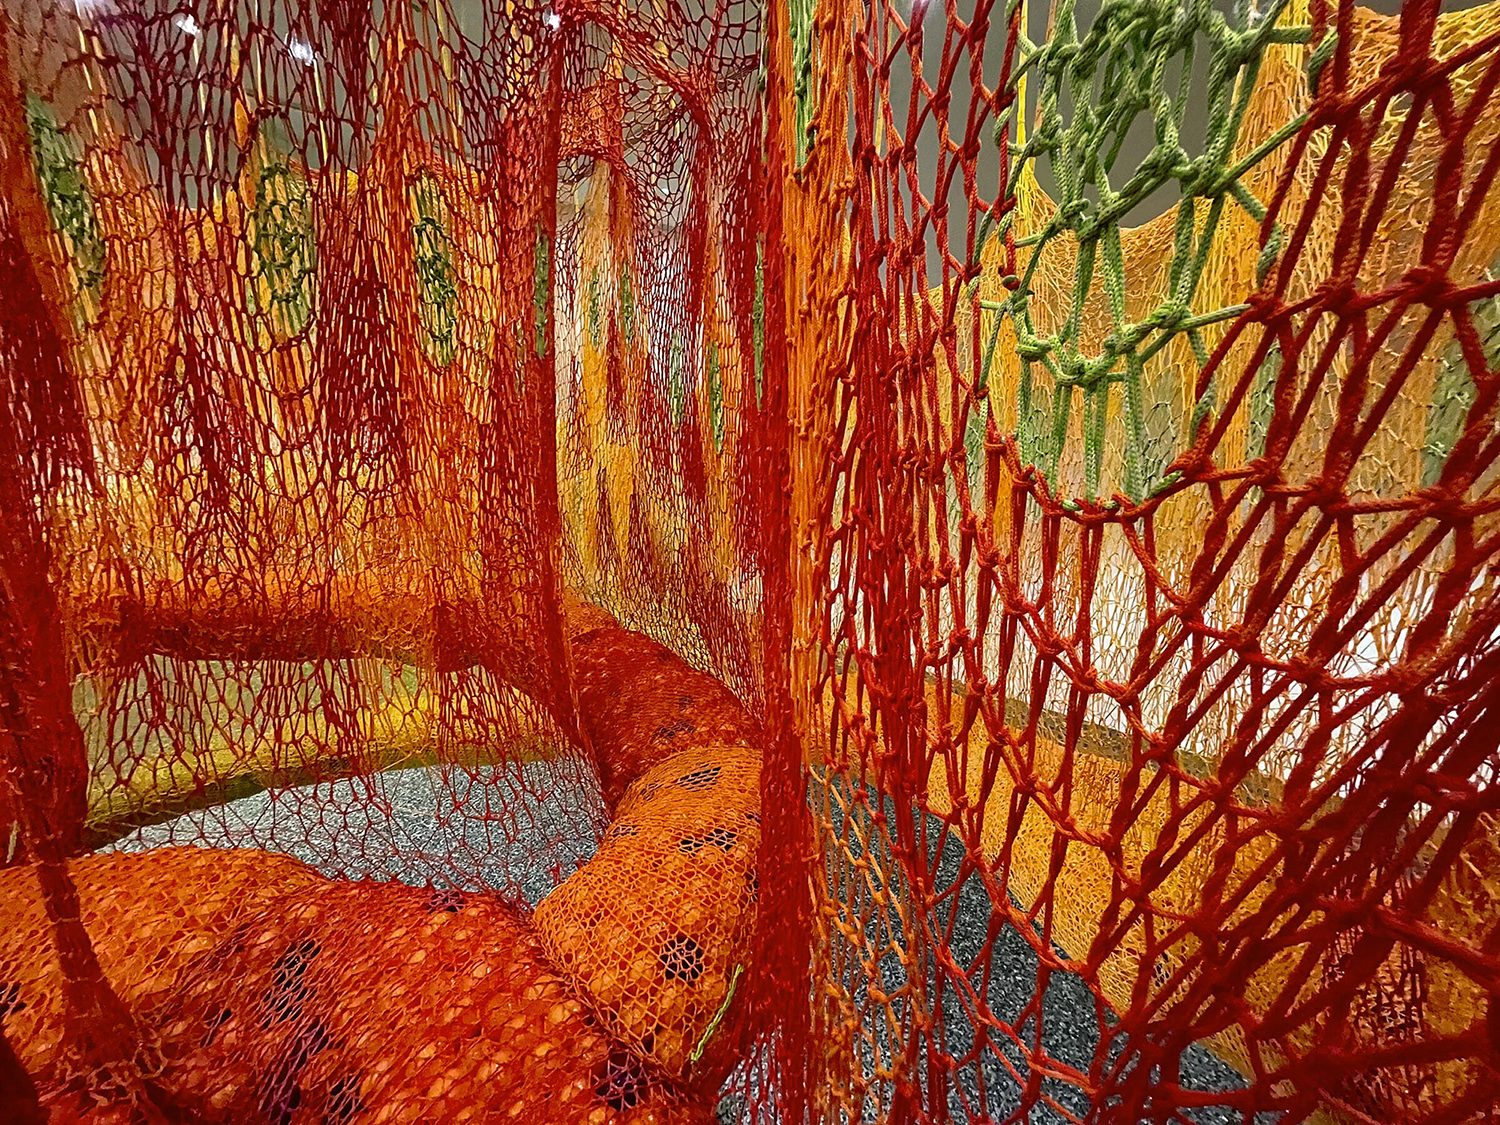 Neto has also burnt the ends of the fibres as a homage to the spiritual rituals of Brazil's indigenous people.